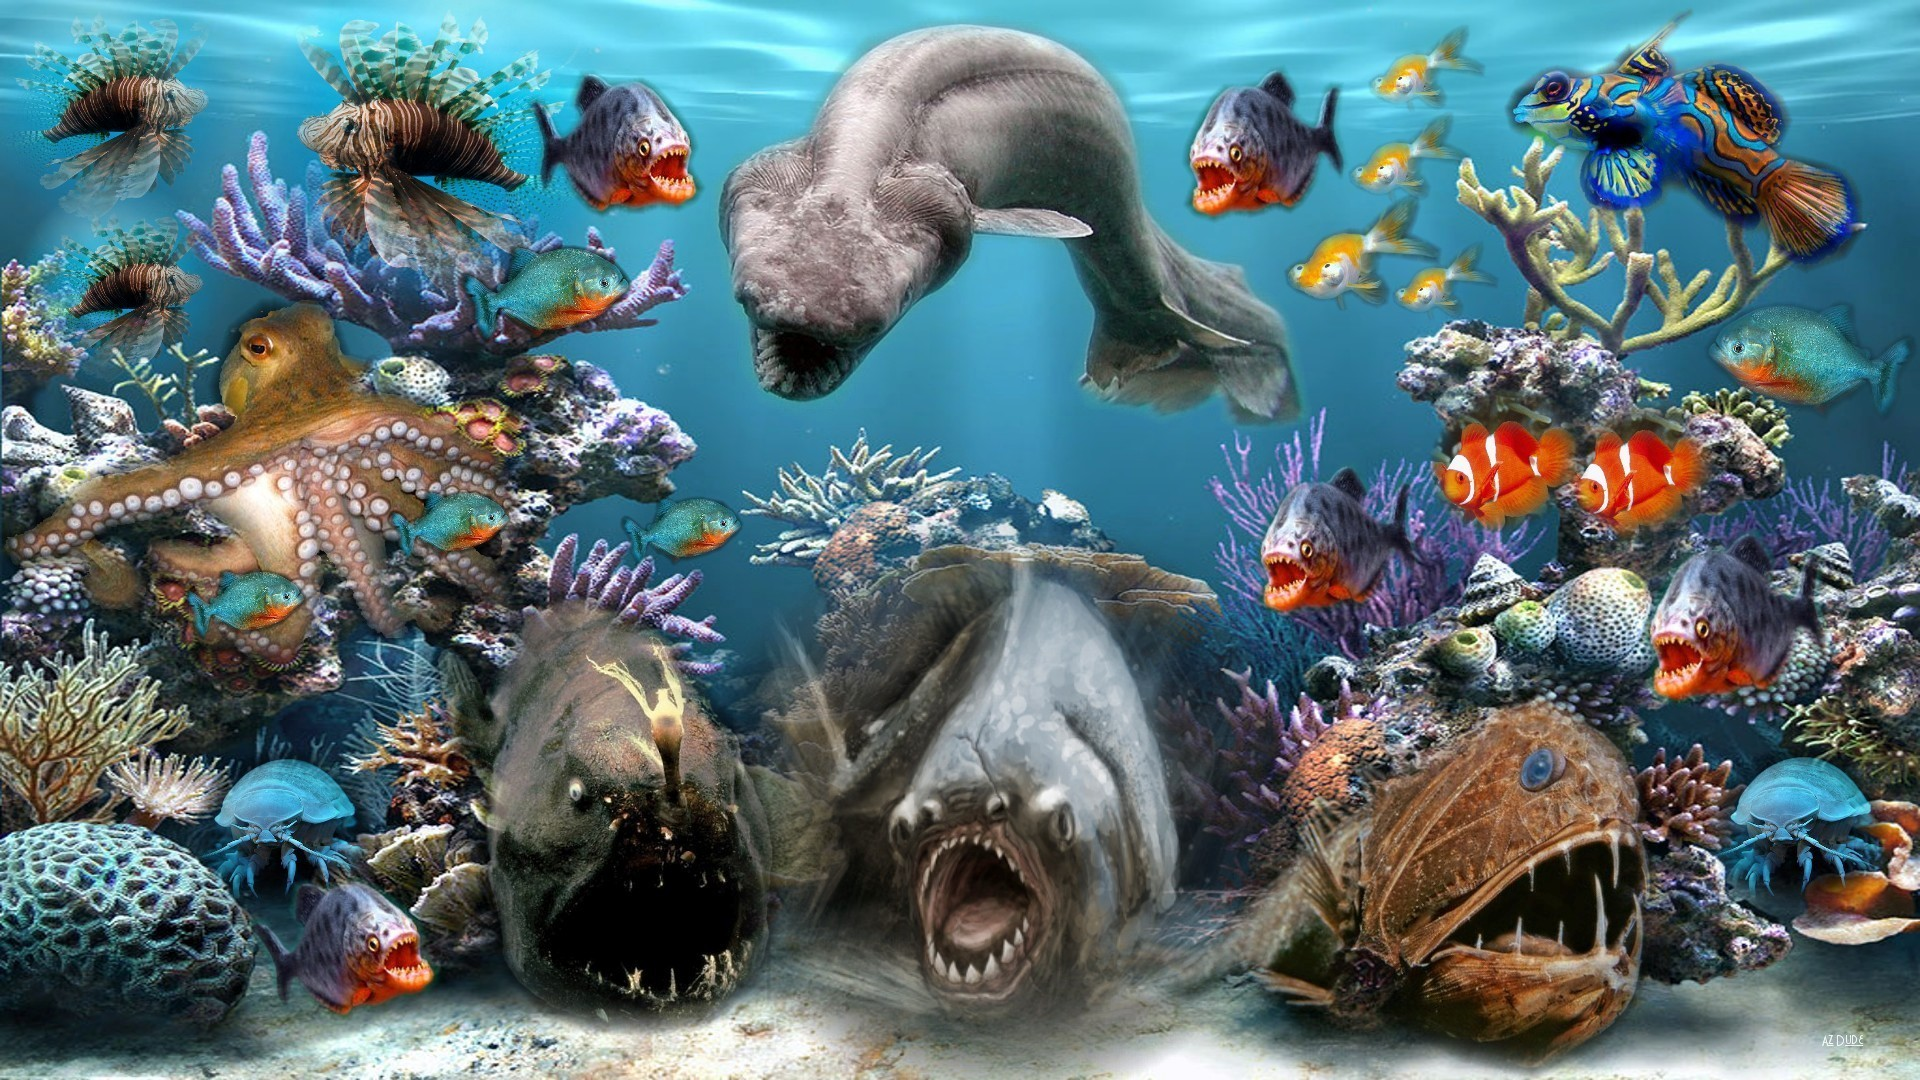 Top 27 Sea Animals Wallpapers In Hd: Sea Creatures Wallpaper (53+ Images